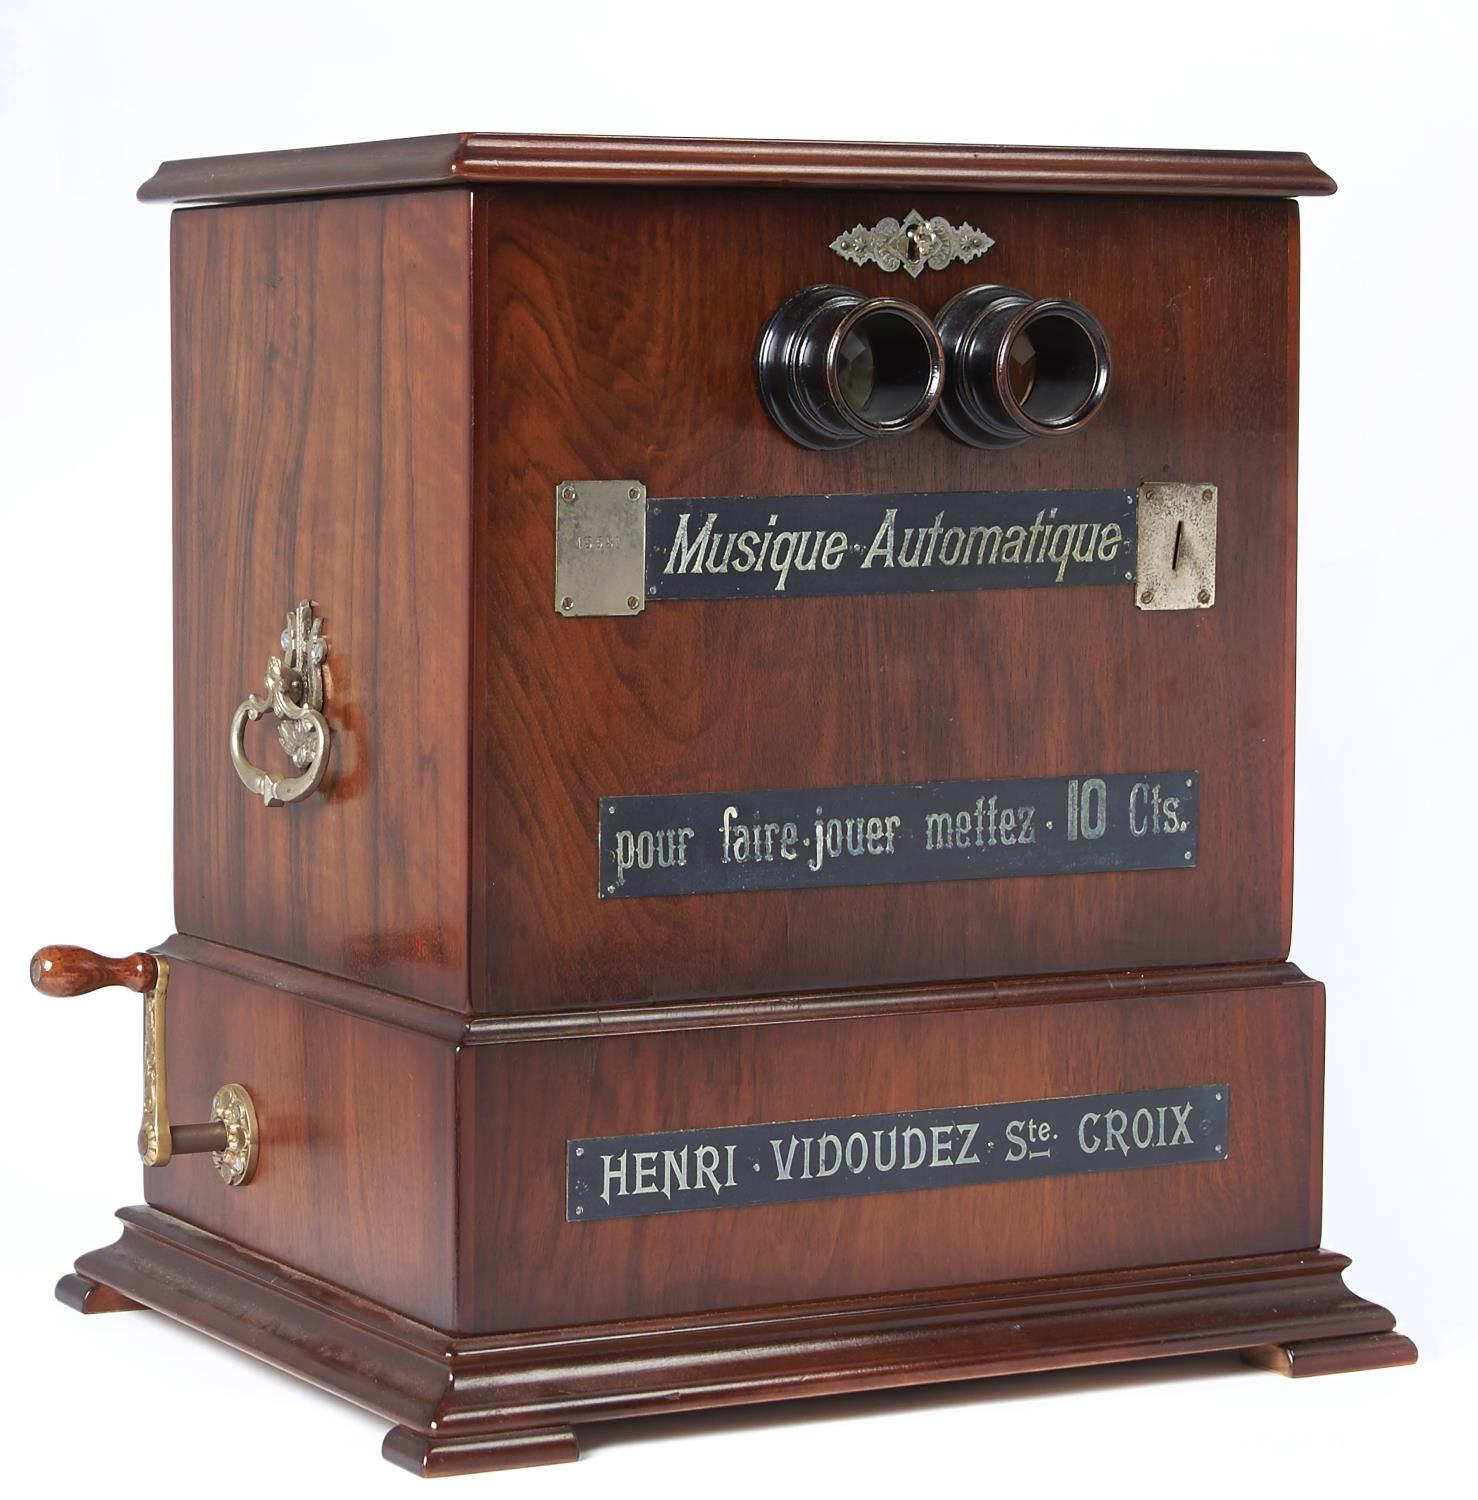 A FINE AND RARE SWISS COIN-IN-THE-SLOT MUSICAL STEREOSCOPE, HENRI VIDOUDEZ, C1885, THE MECHANISM